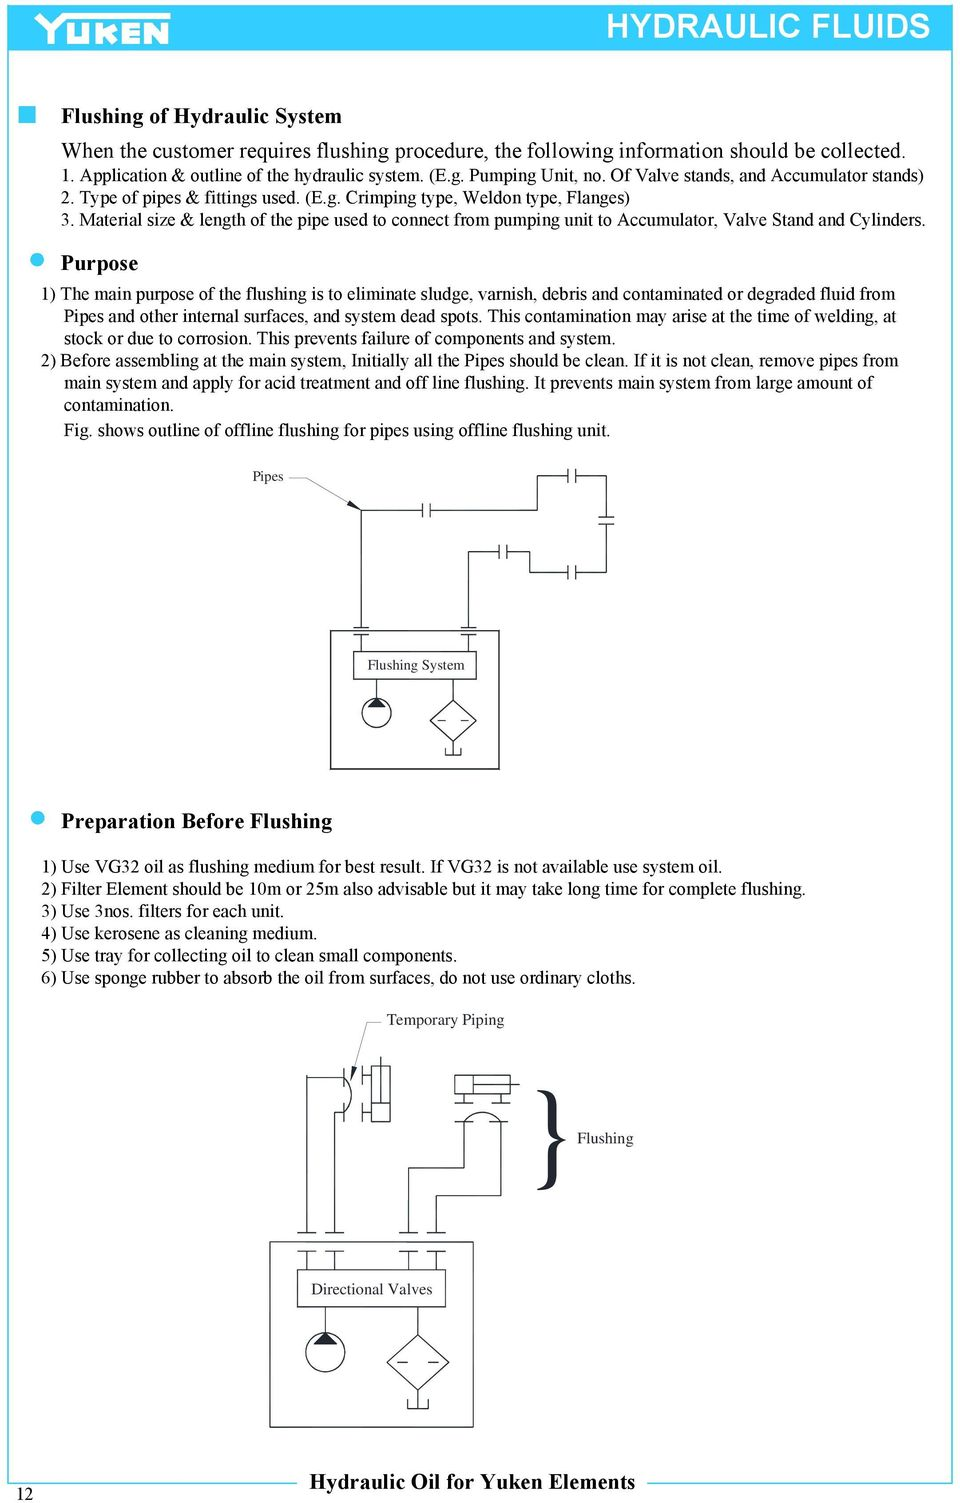 Classification And Characteristics Contamination Control Hydraulic Simple System Diagram Industrial Hydraulics Material Size Length Of The Pipe Used To Connect From Pumping Unit Accumulator